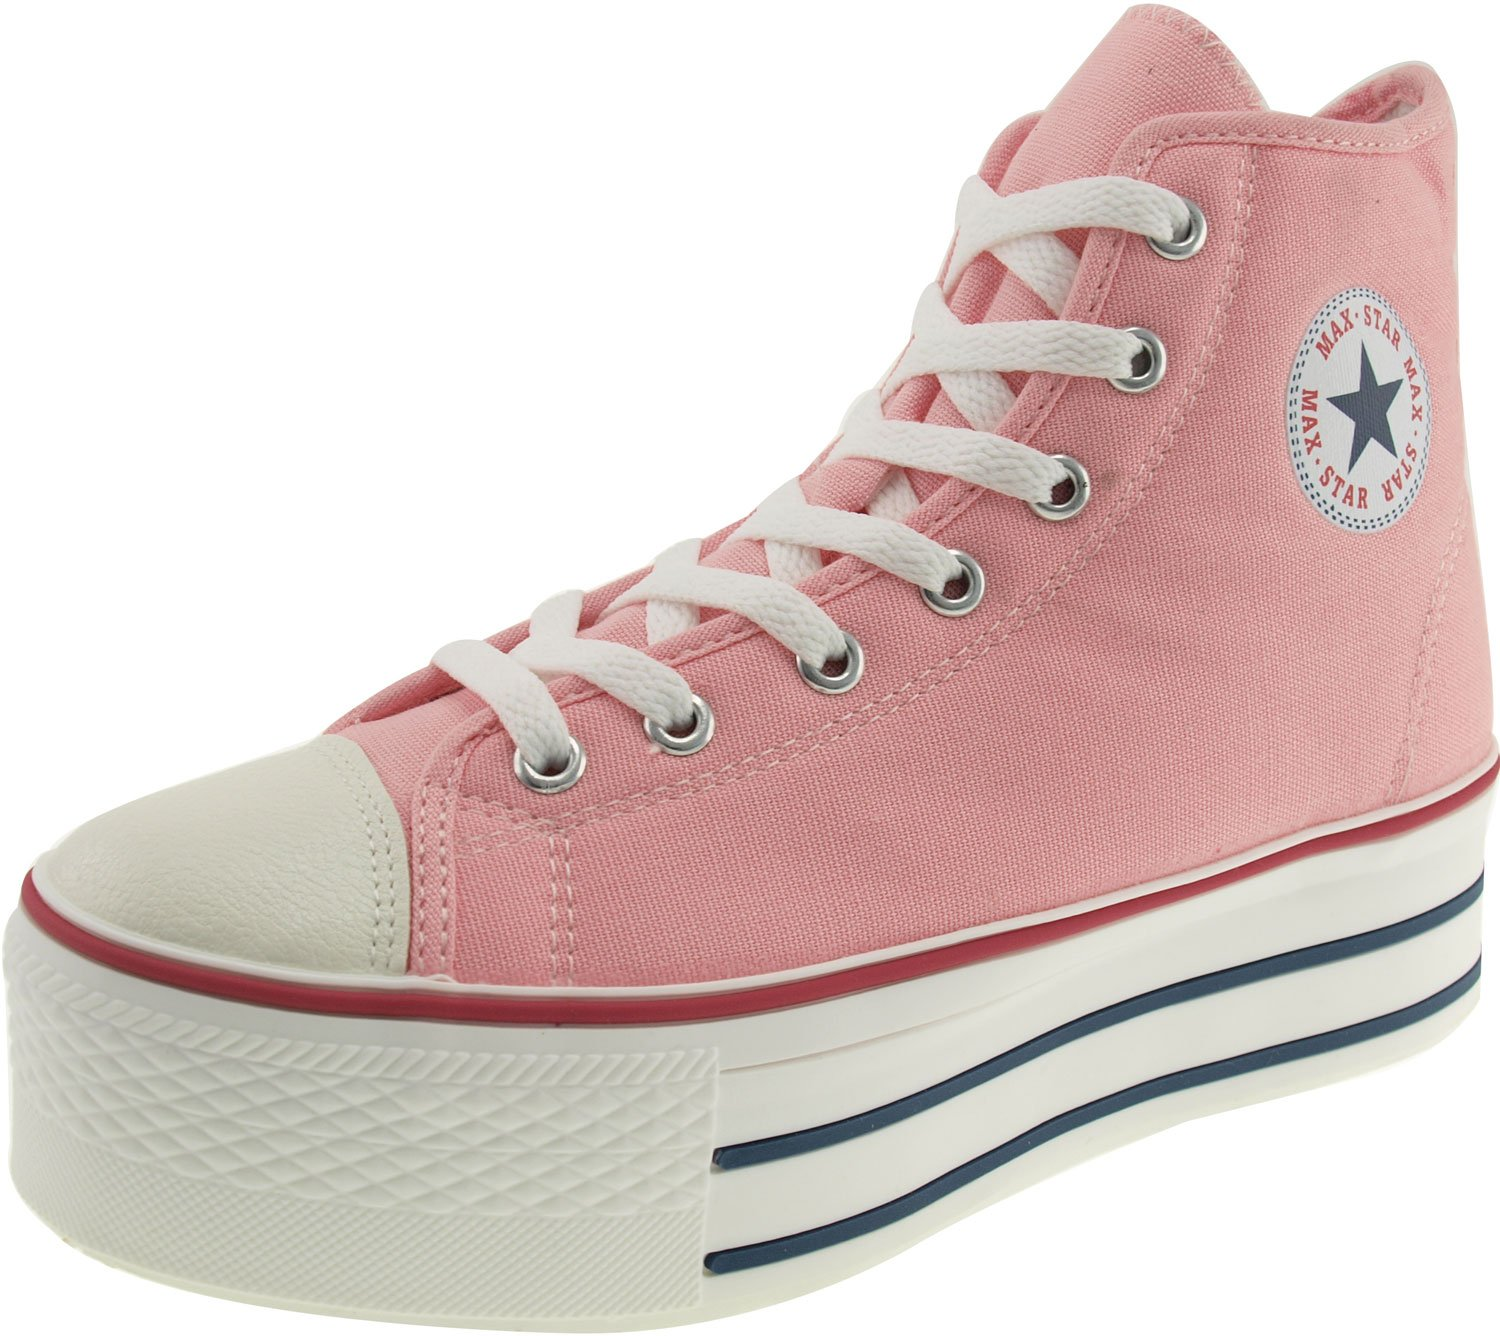 Maxstar Women's C50 7 Holes Zipper Platform Canvas High Top Sneakers B00CHVUZQE 7.5 B(M) US|Pink